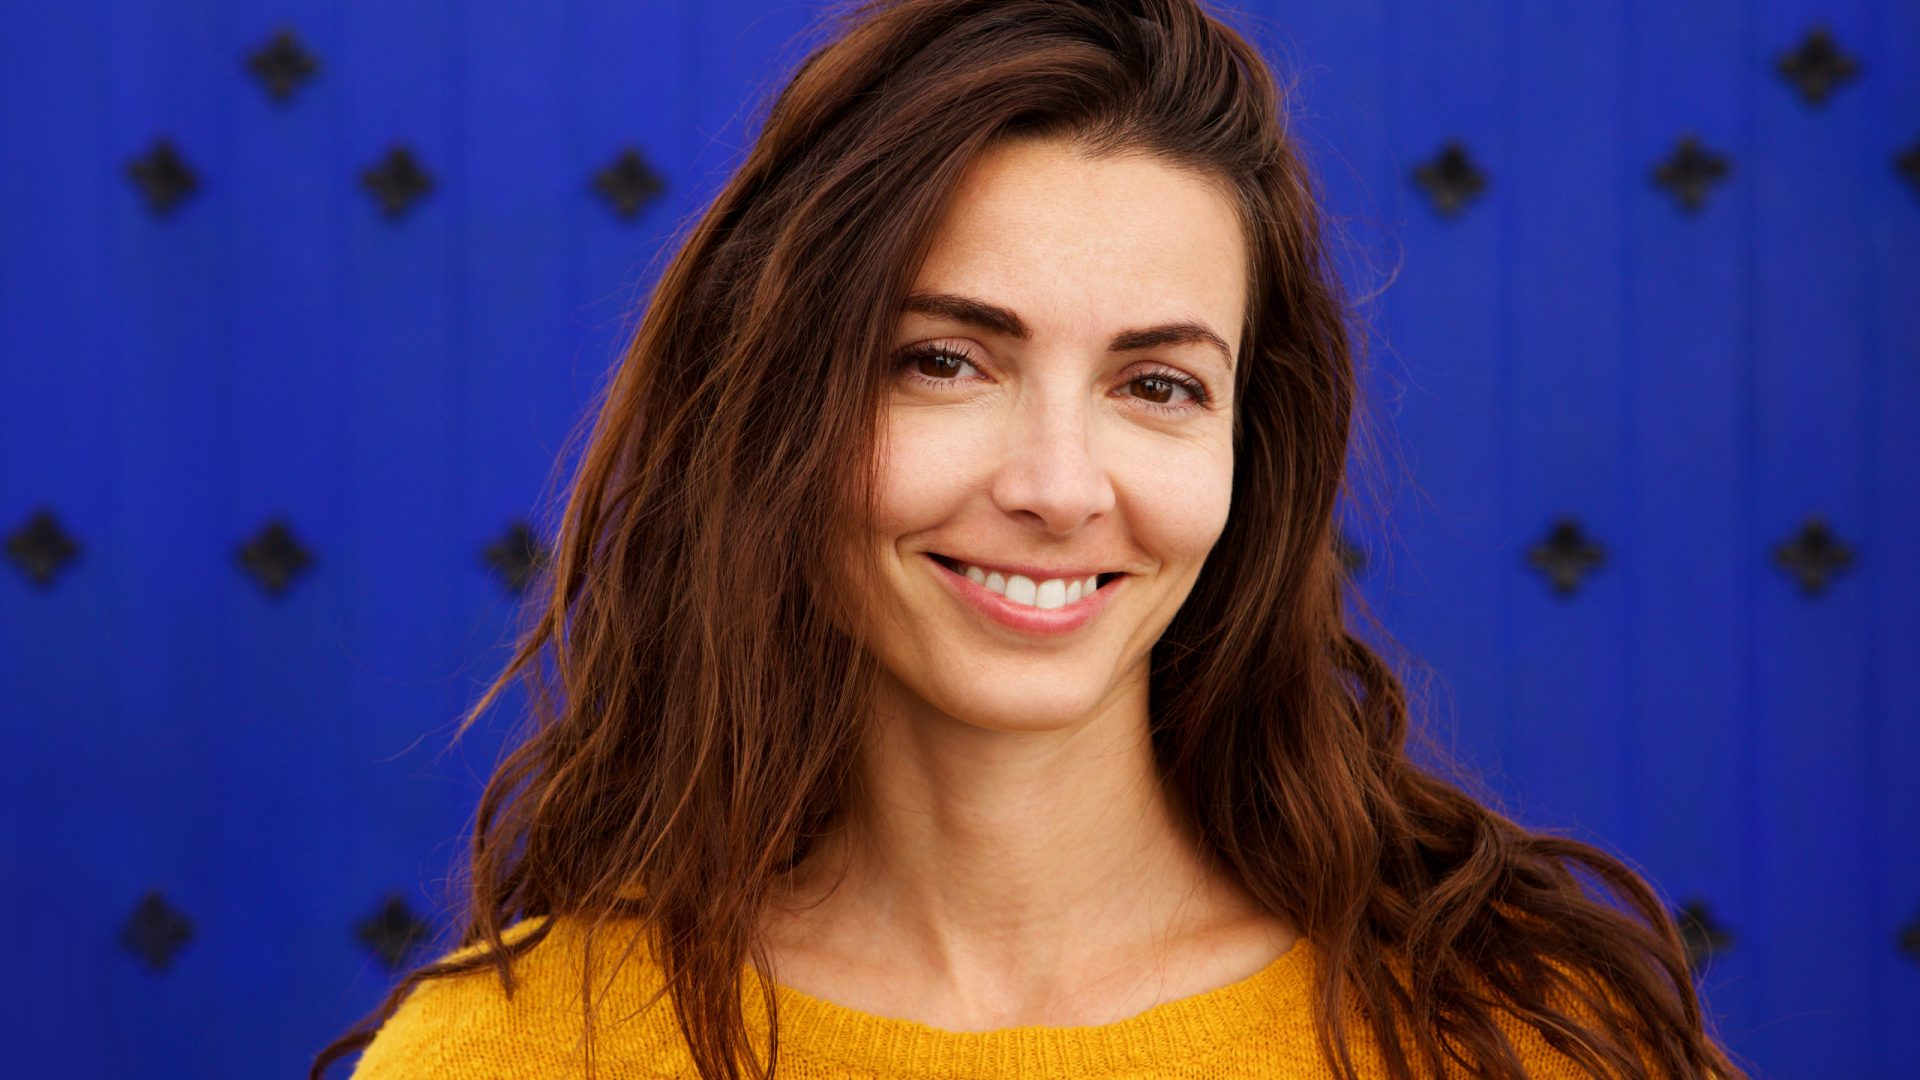 Close up portrait of beautiful young woman smiling against blue background